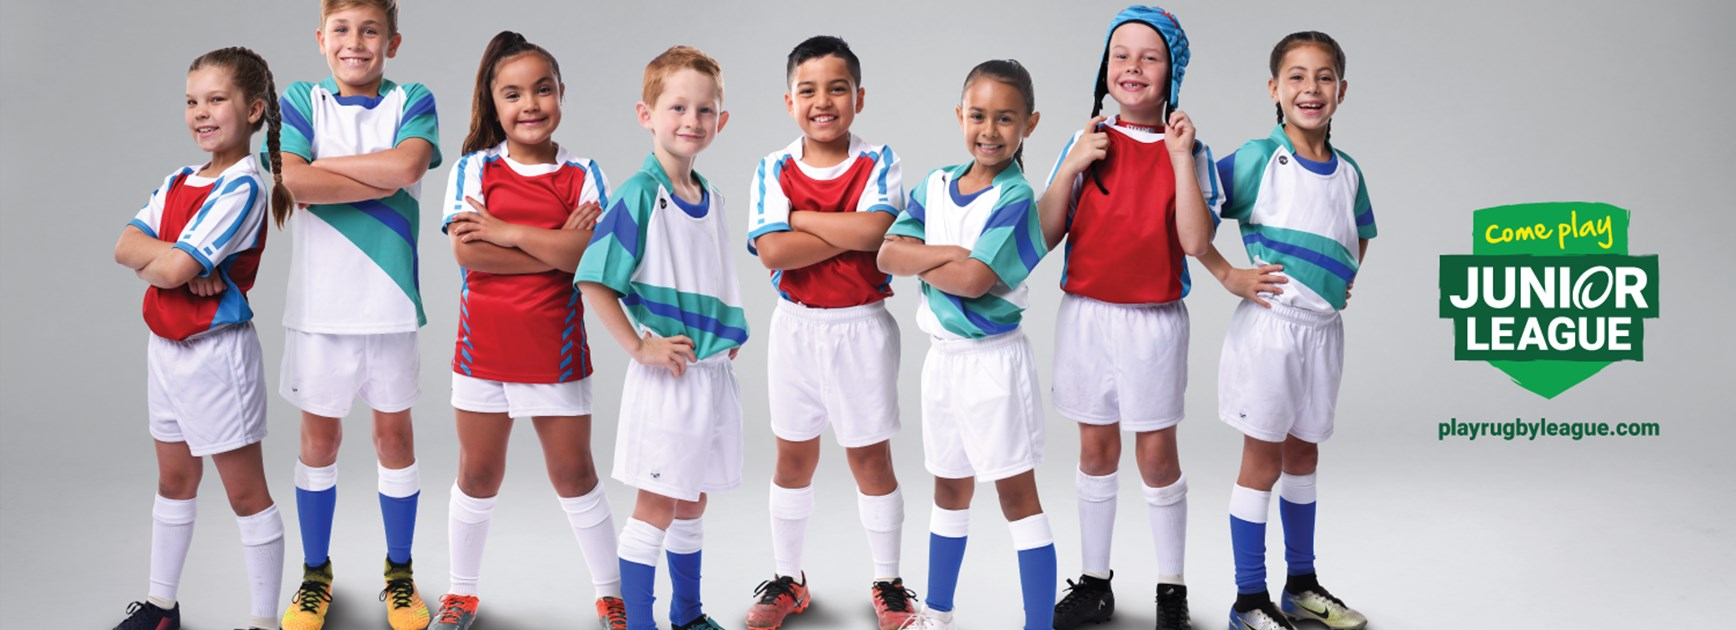 Kids star in campaign to Come Play Junior League